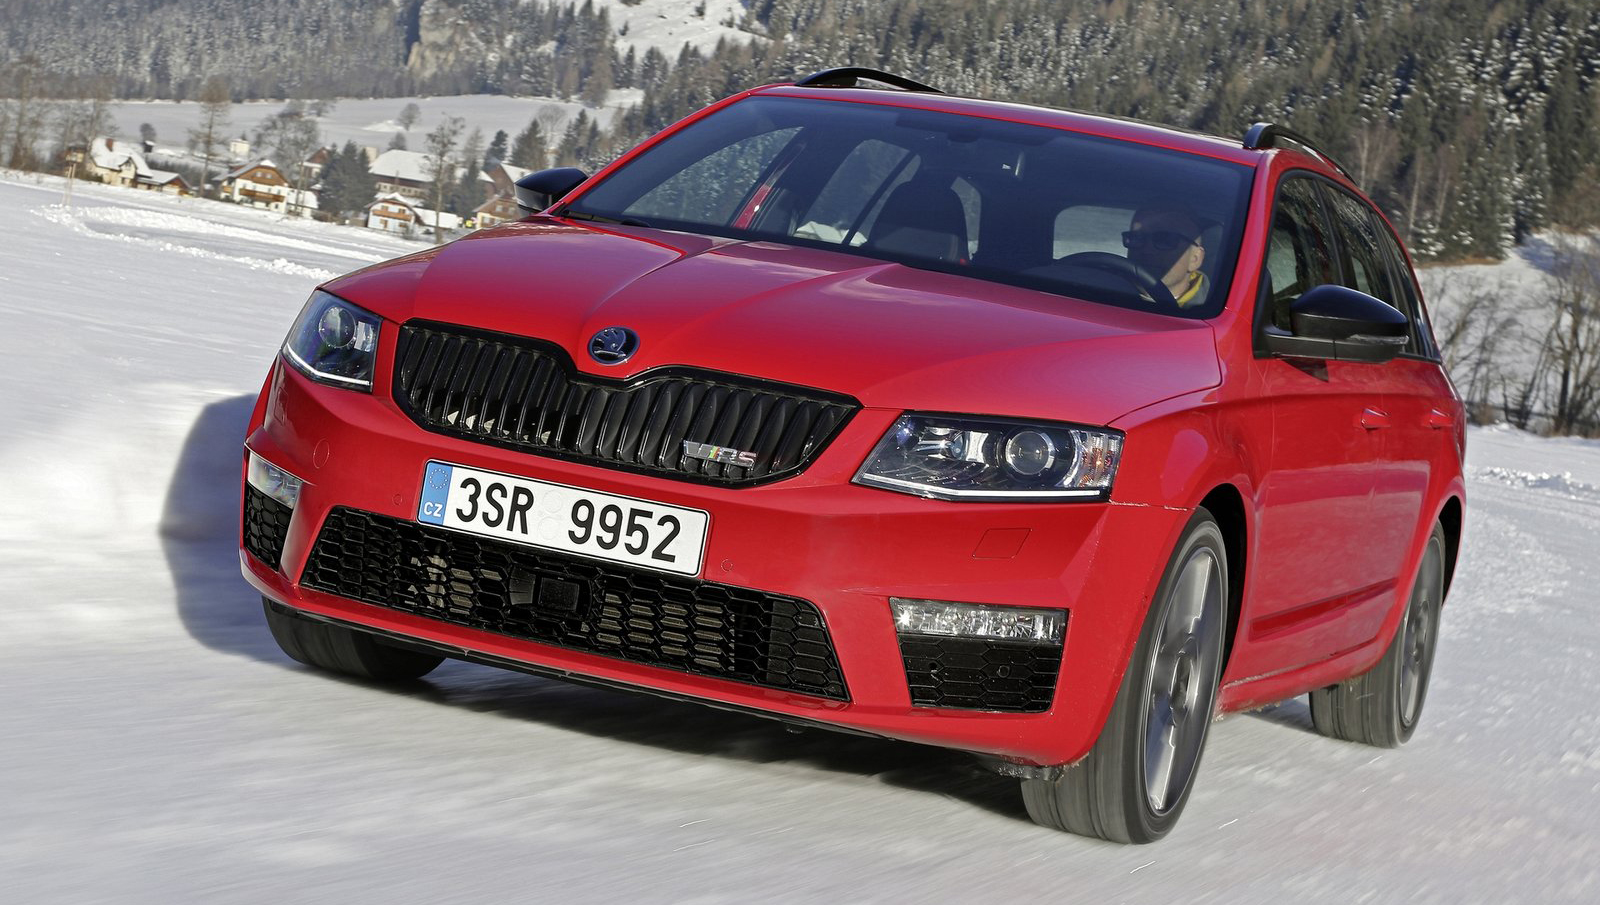 skoda octavia rs 4 4 all wheel drive for the 2 0 tdi paul tan image 451807. Black Bedroom Furniture Sets. Home Design Ideas